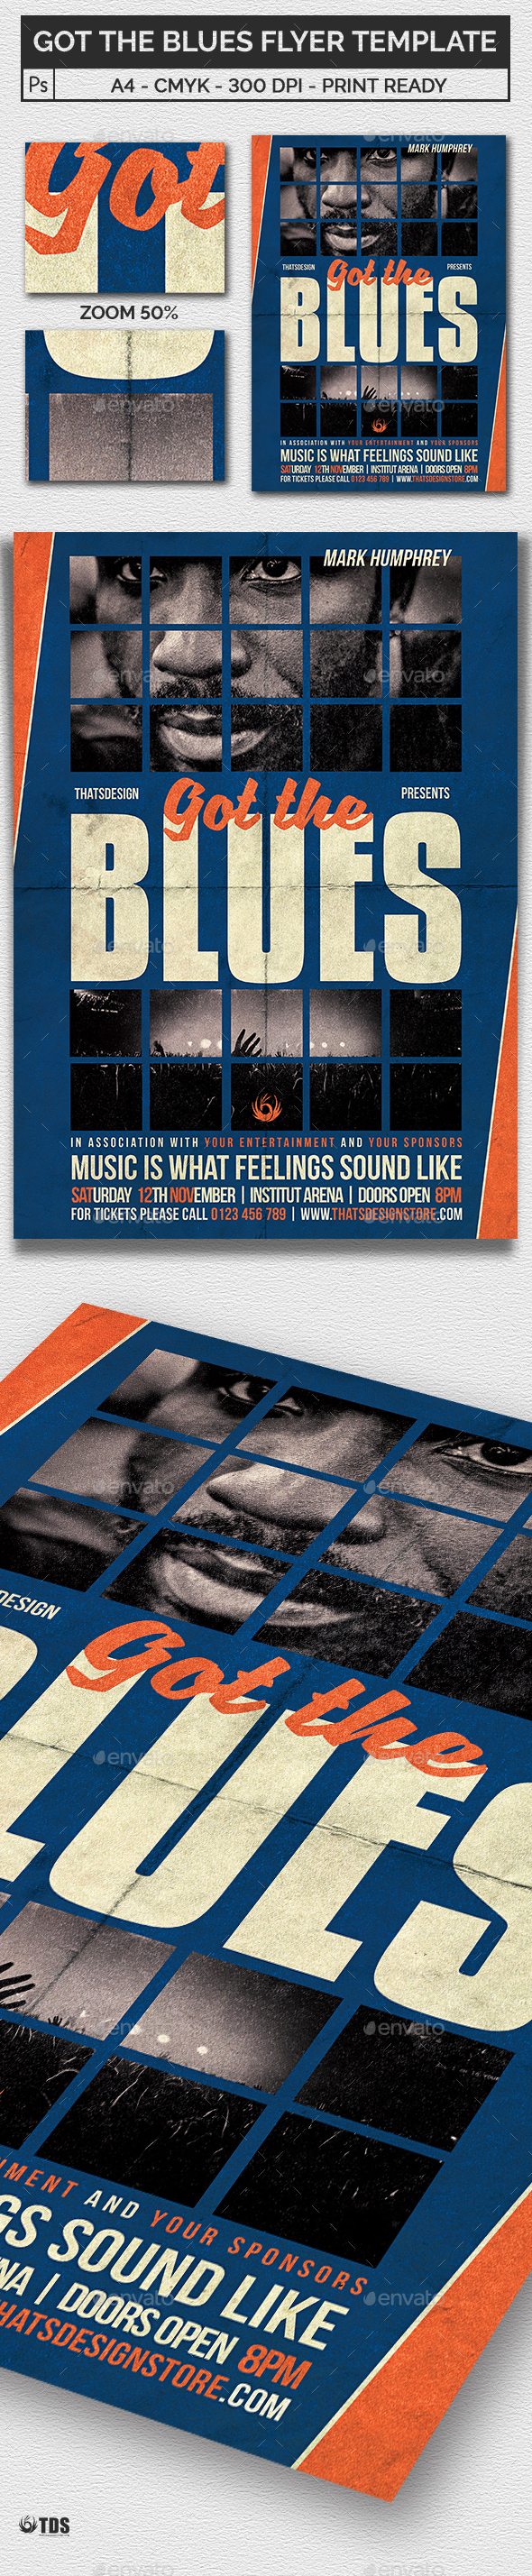 Got the Blues Flyer Template - Concerts Events